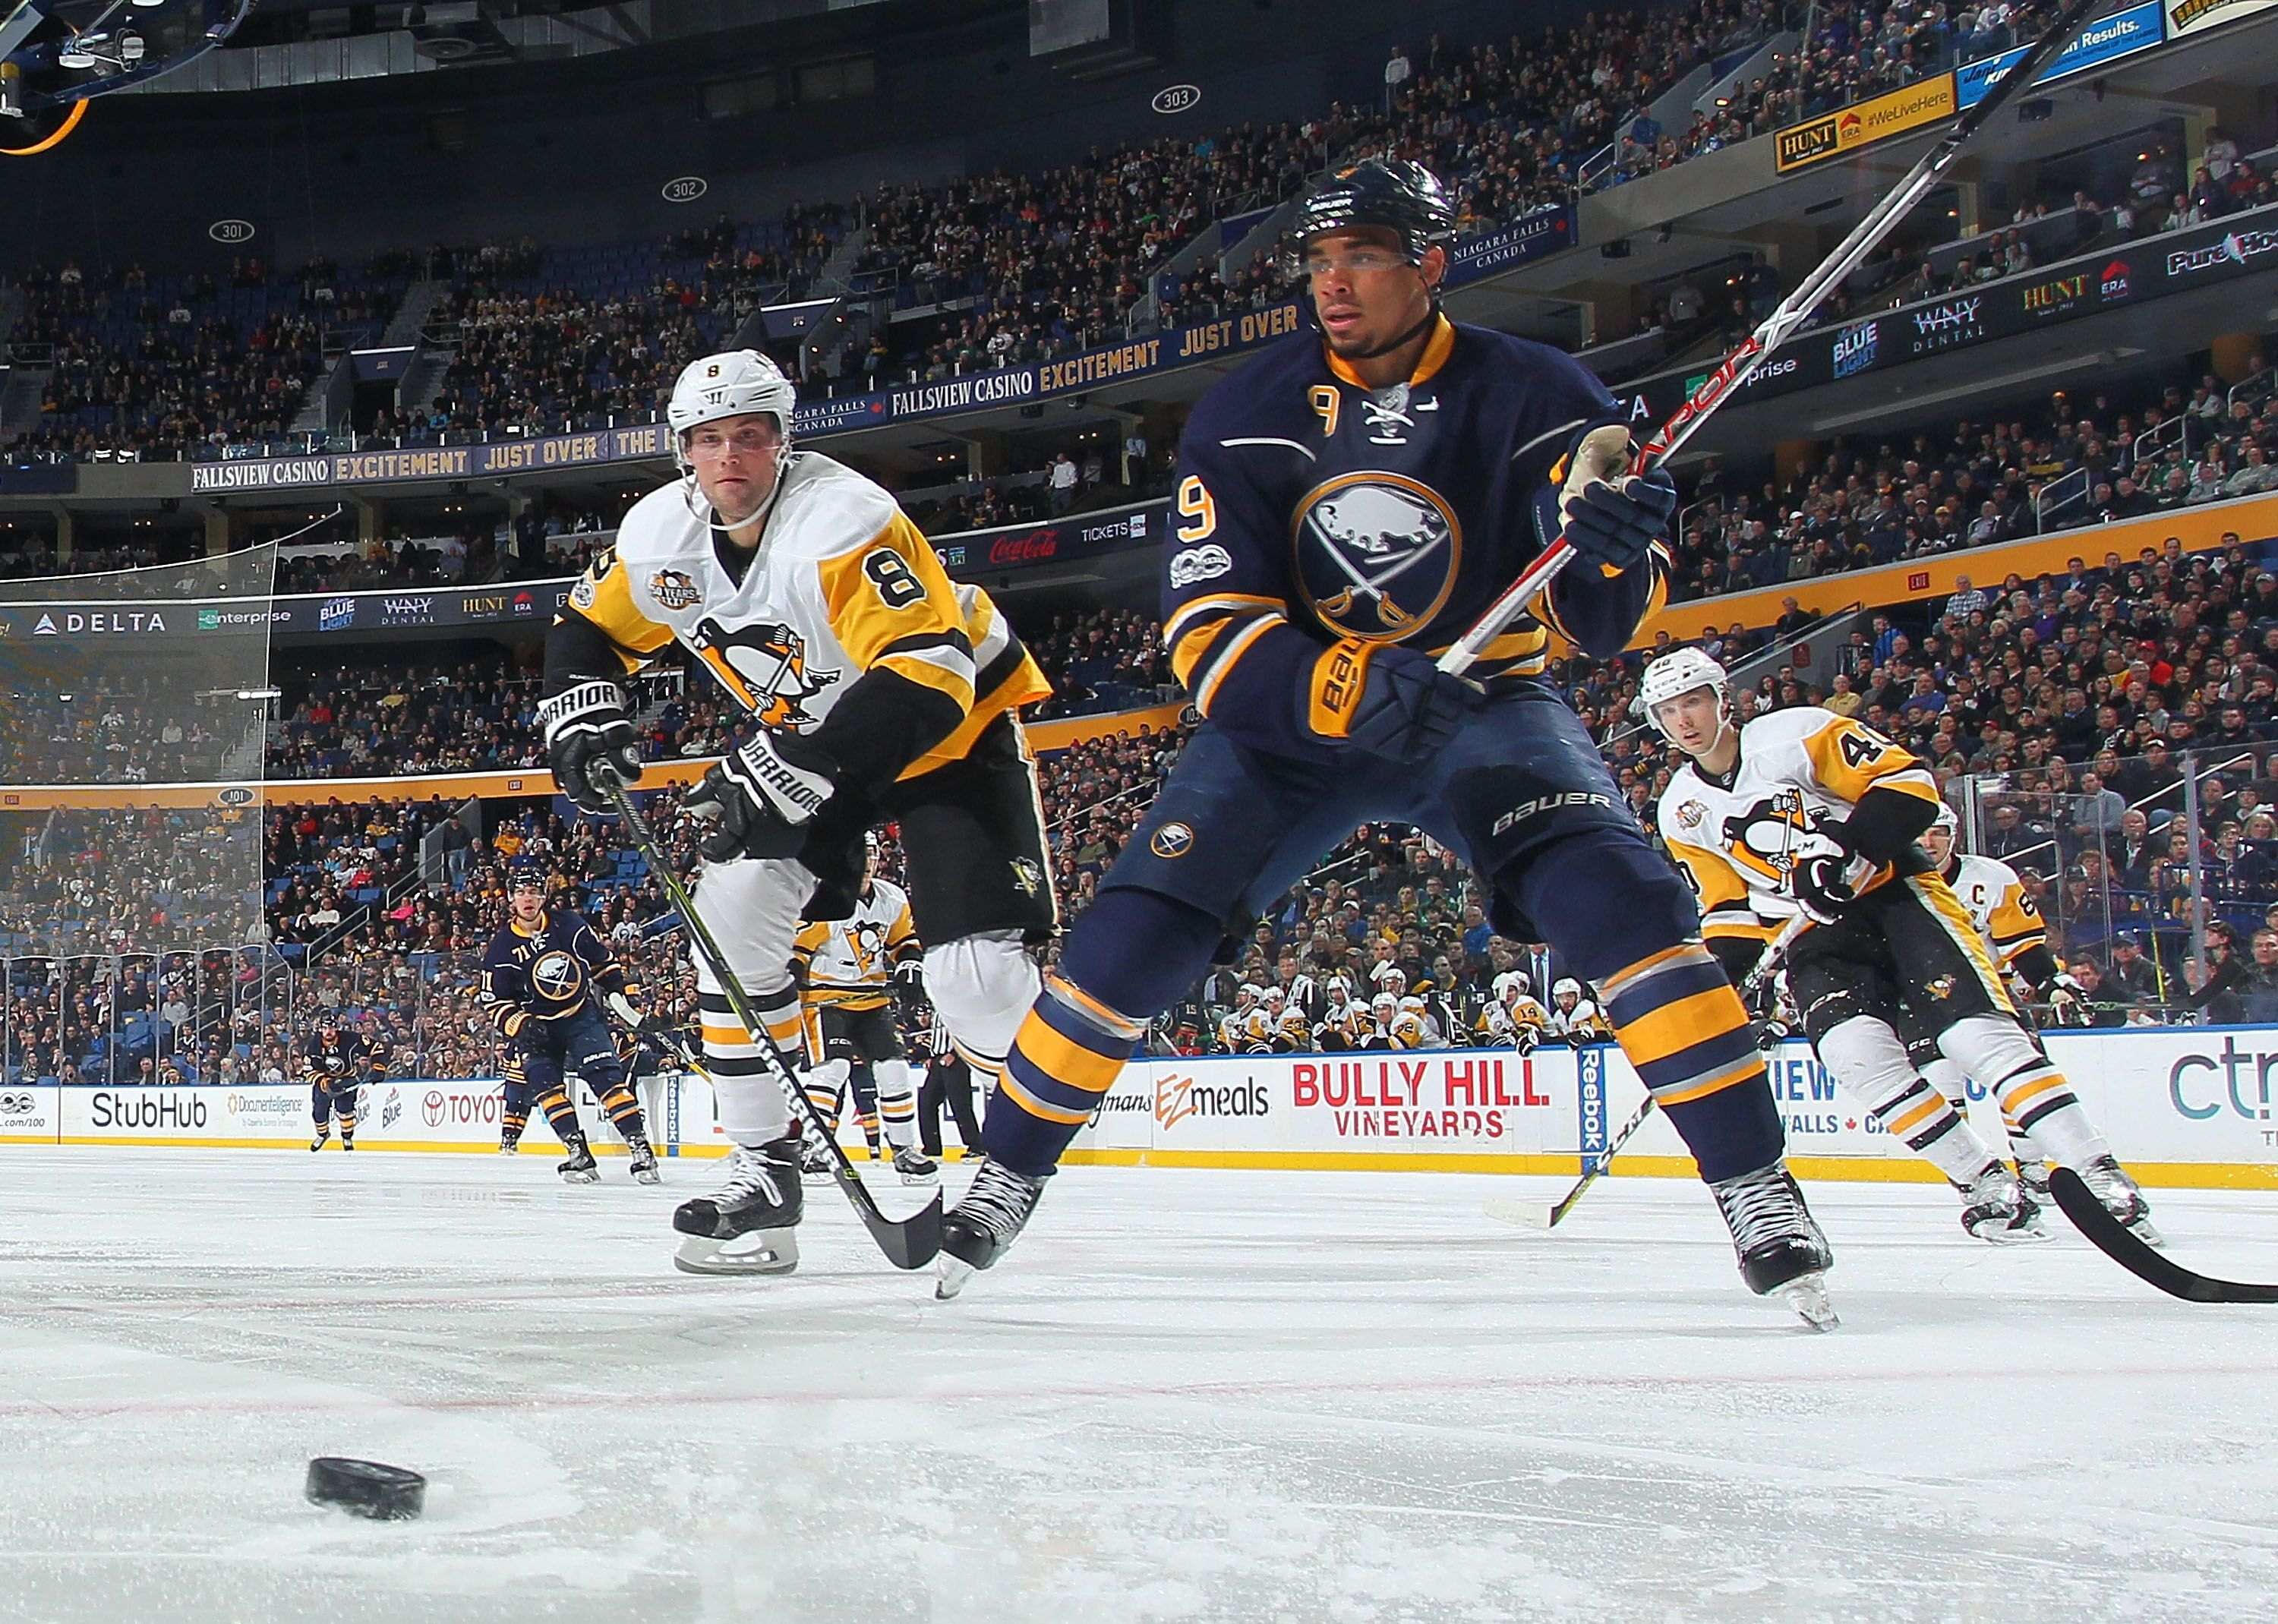 664364938-pittsburgh-penguins-v-buffalo-sabres.jpg